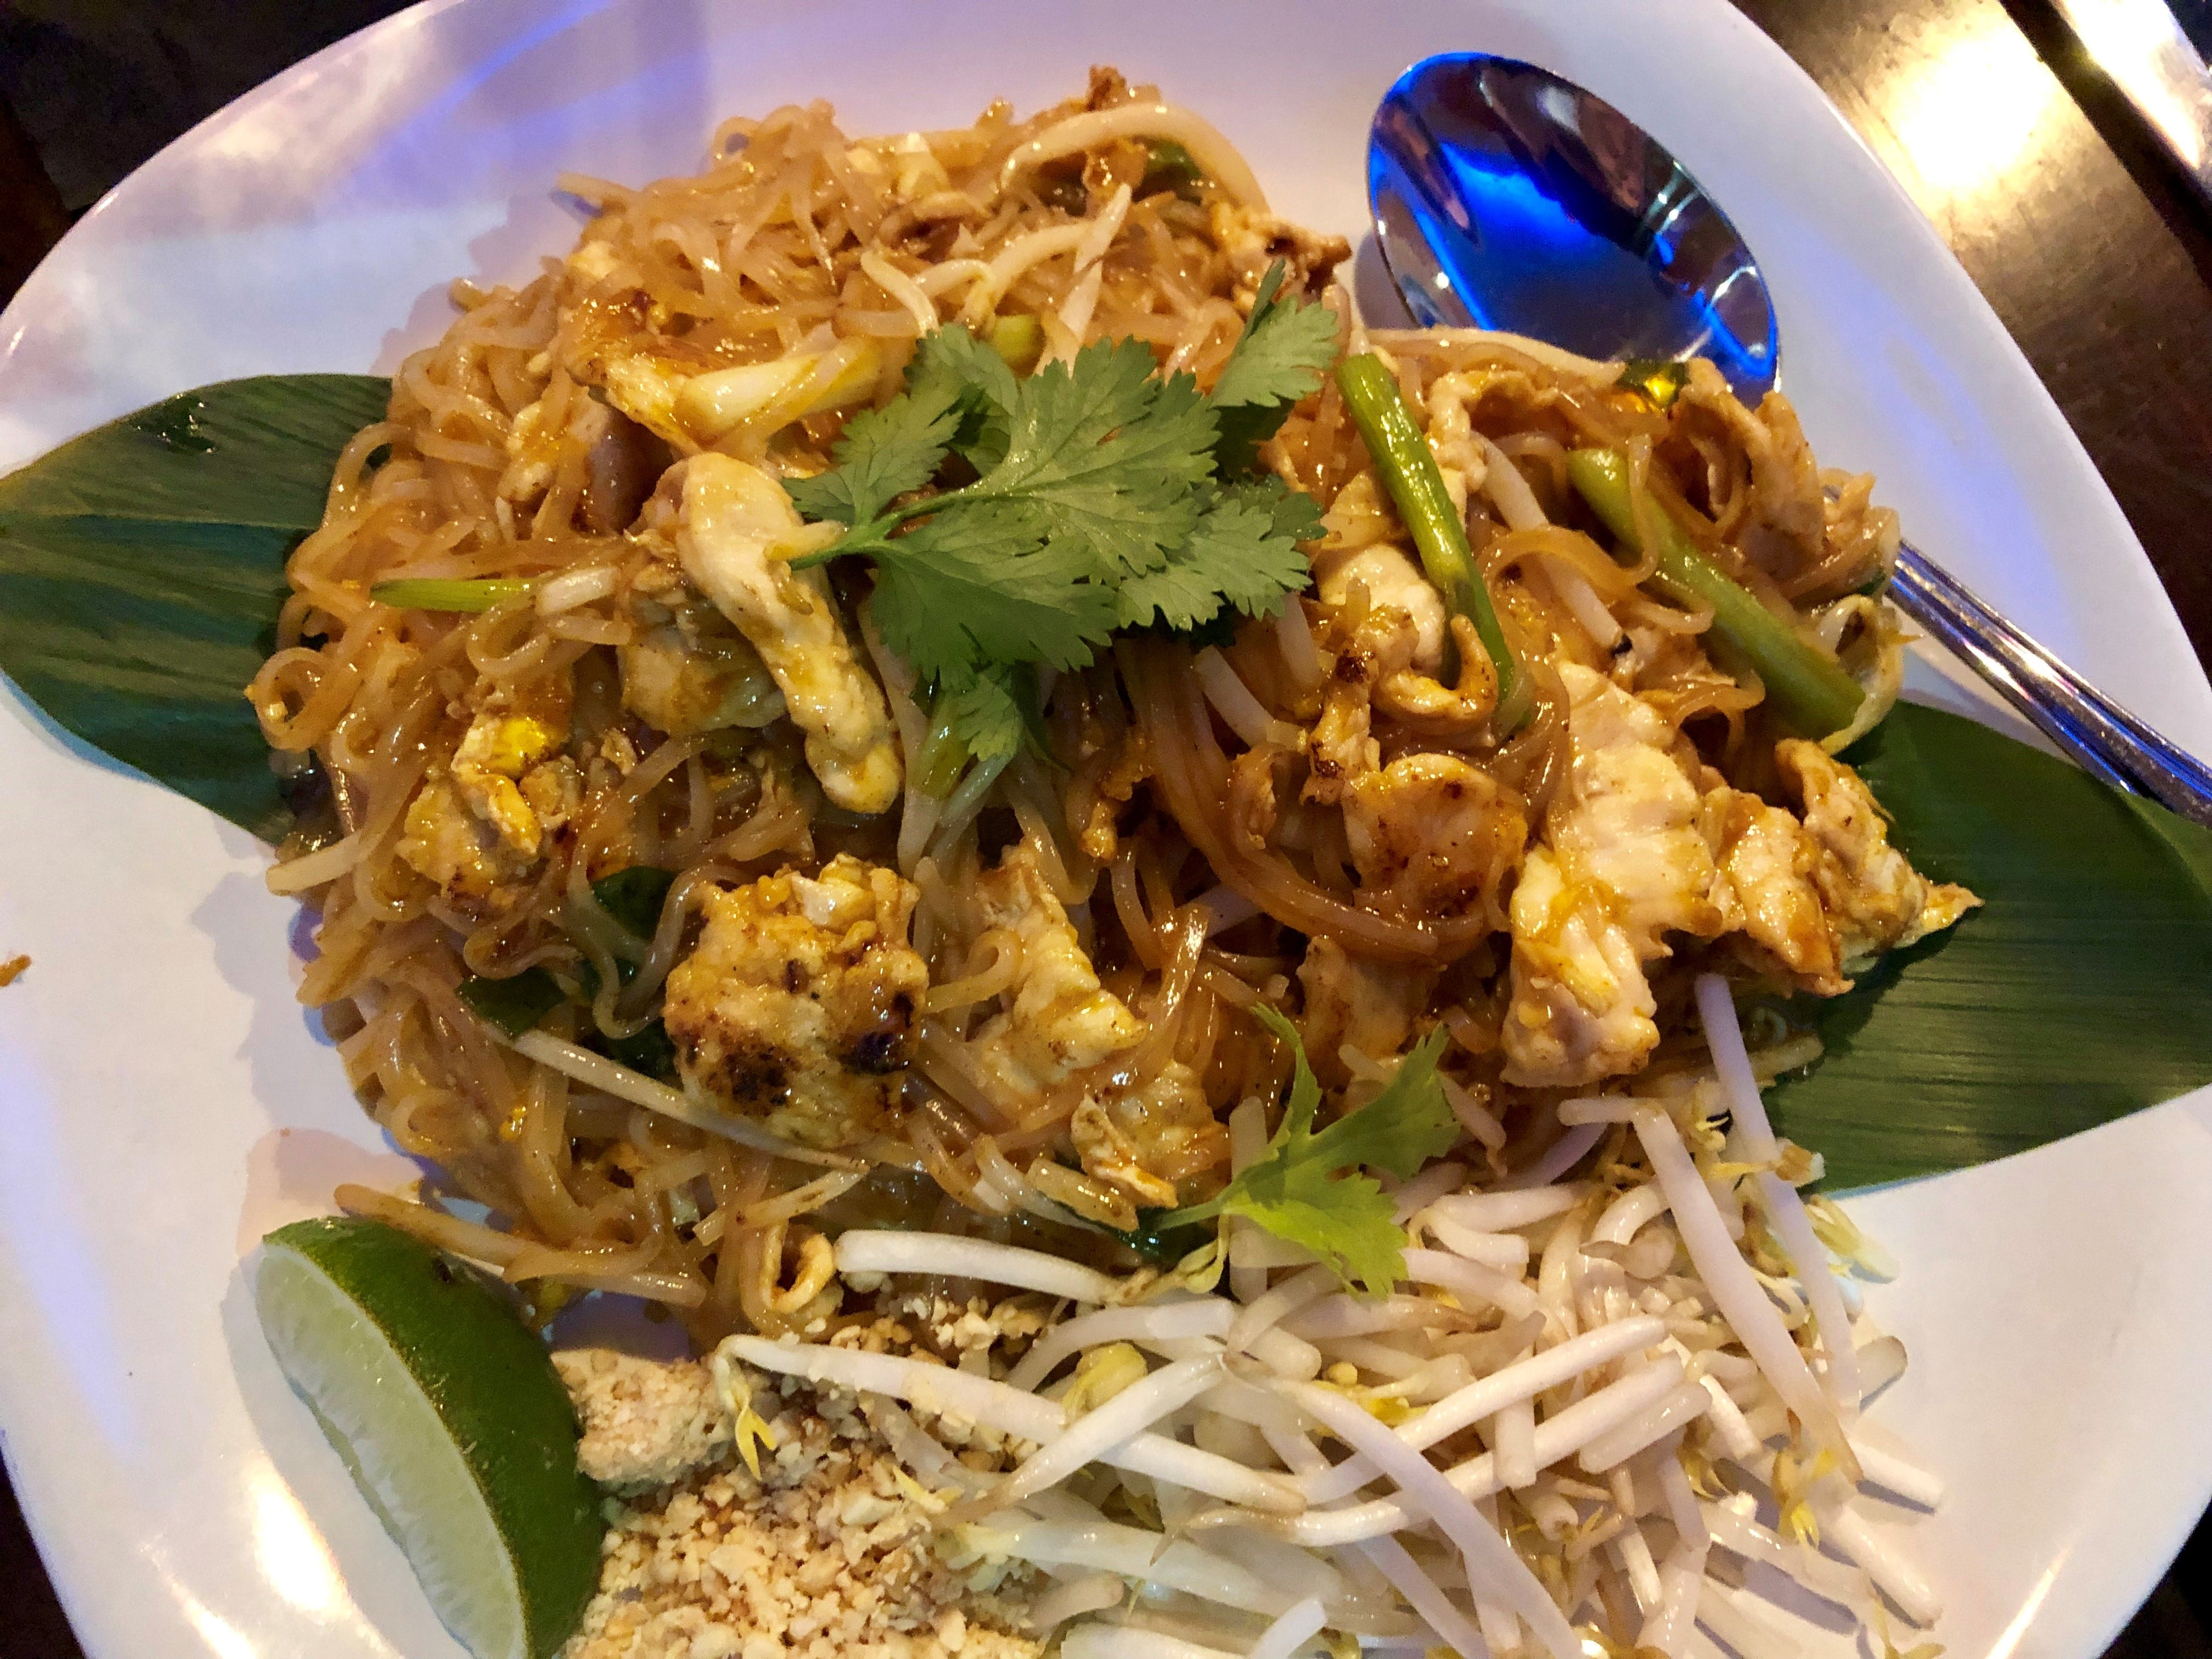 Another view of the Pad Thai at Ninja Thai & Sushi Bar in south Fort Myers.